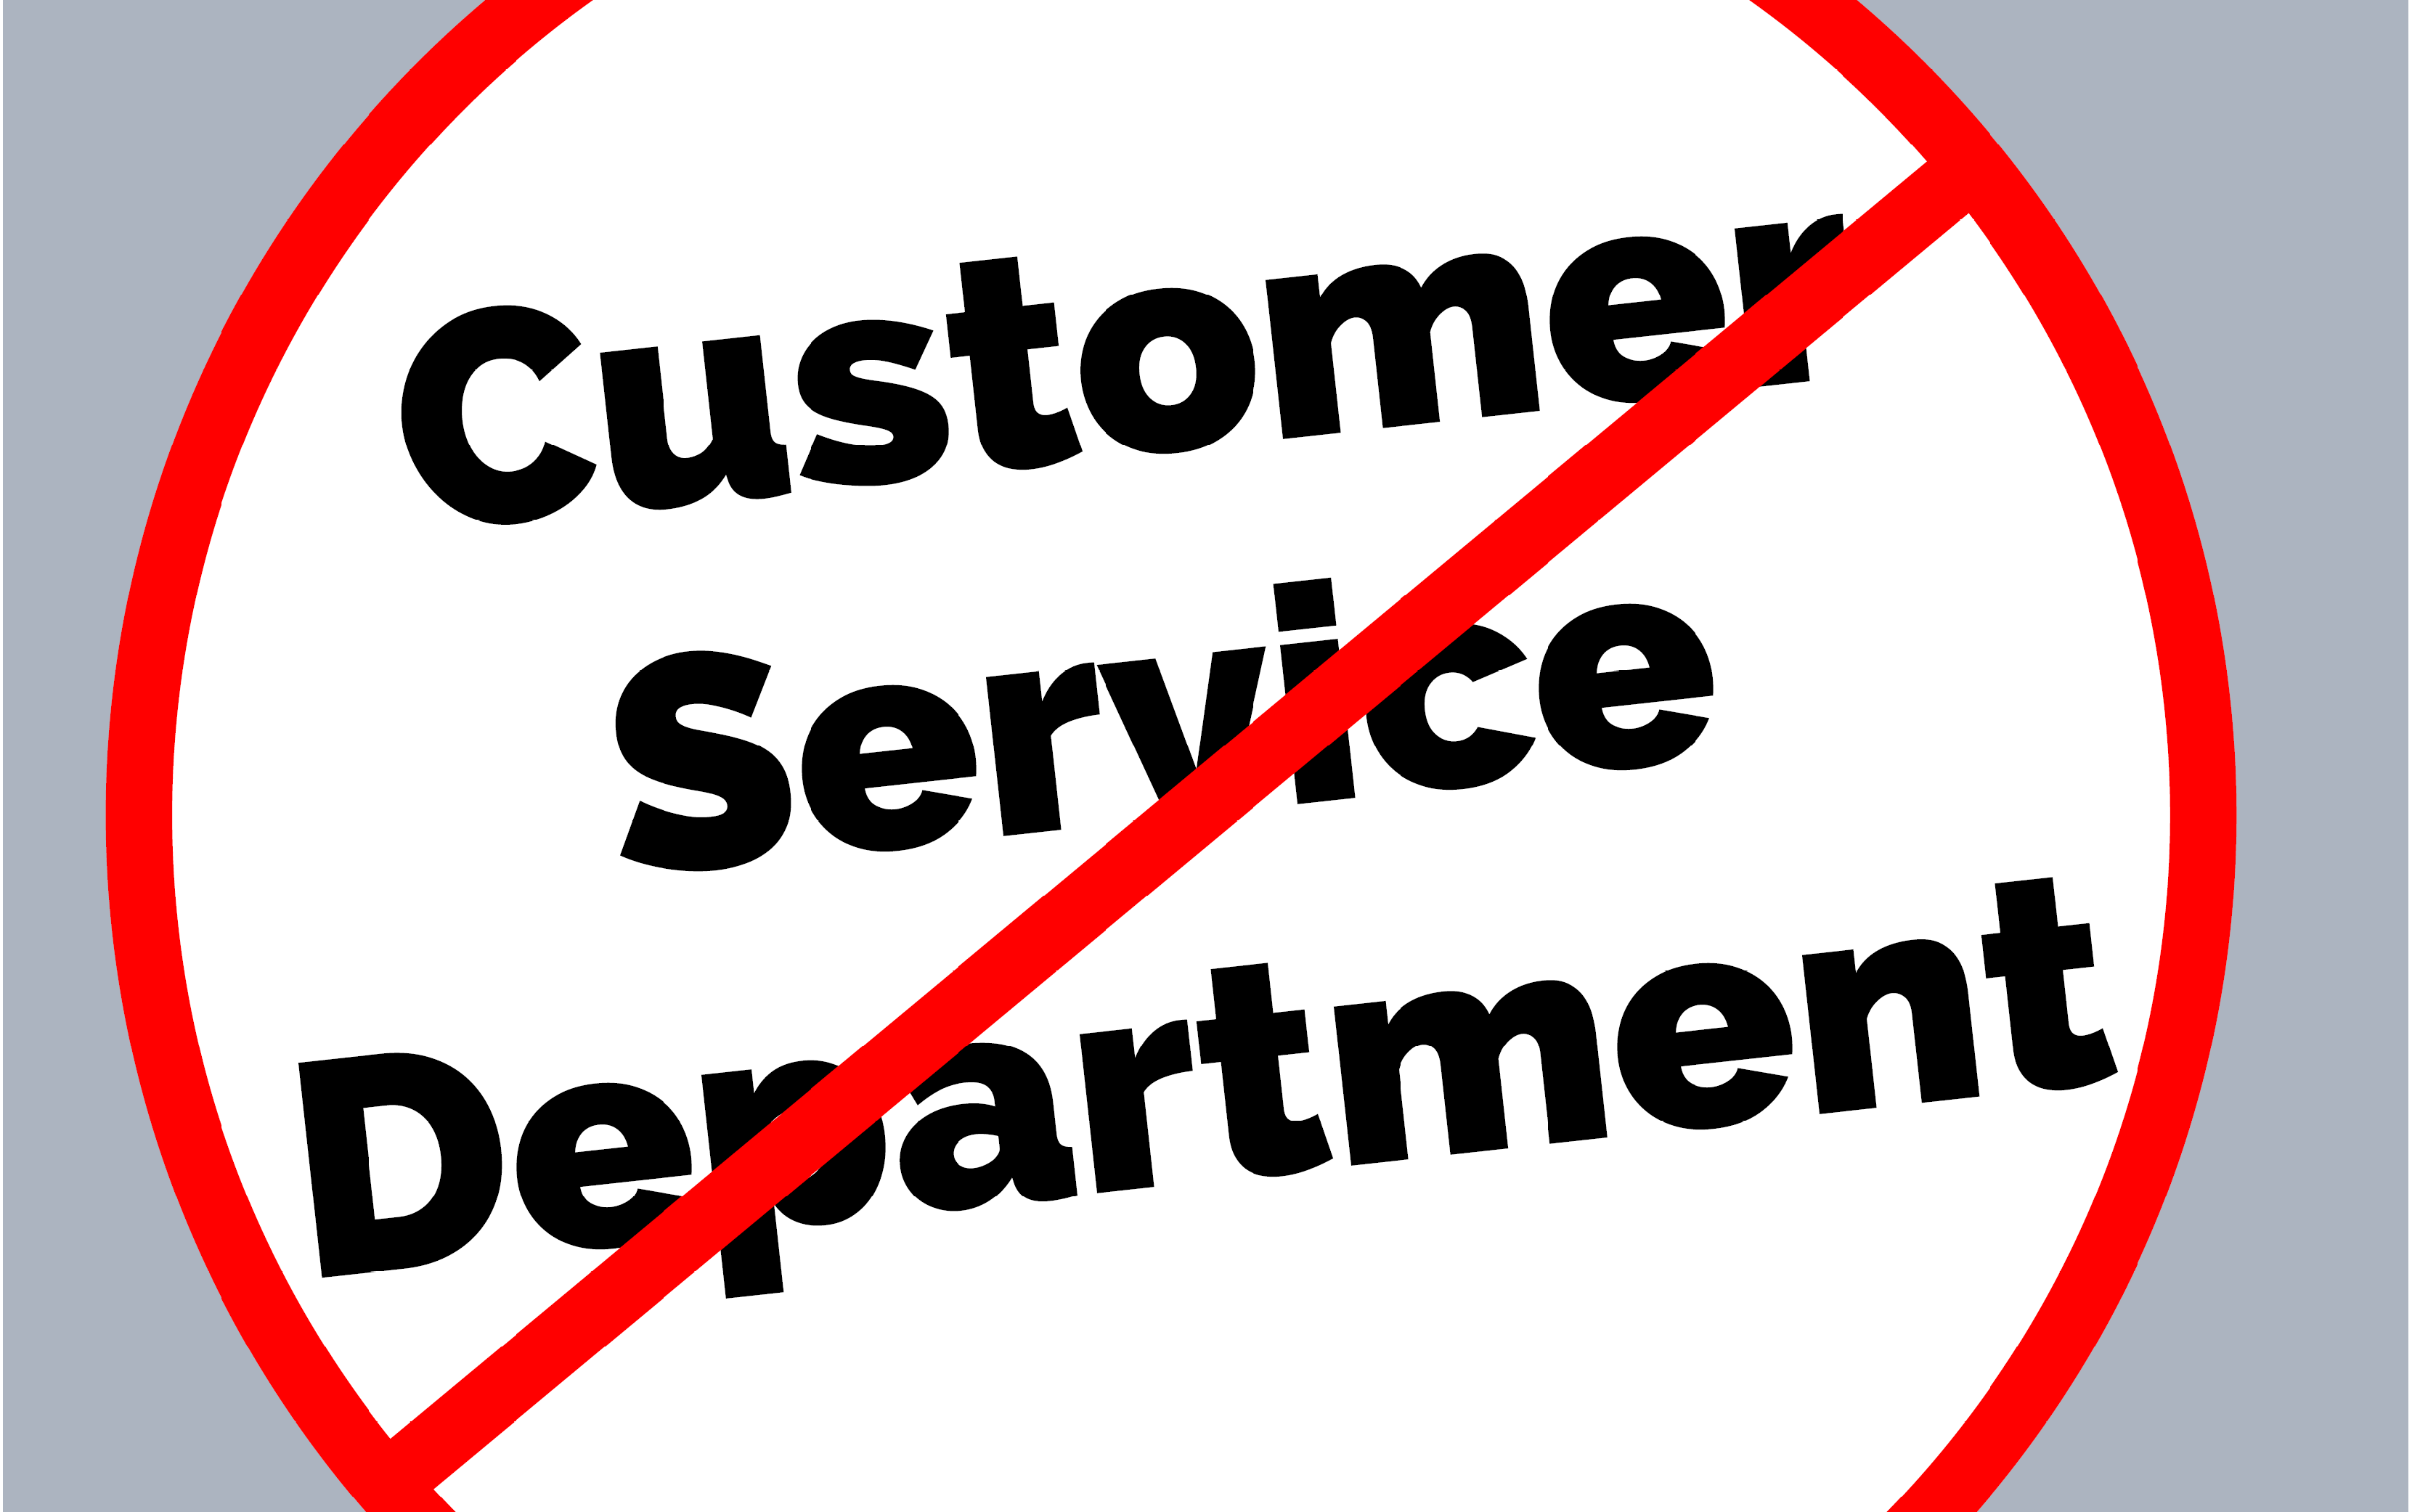 Customer Service Departments Are Dead